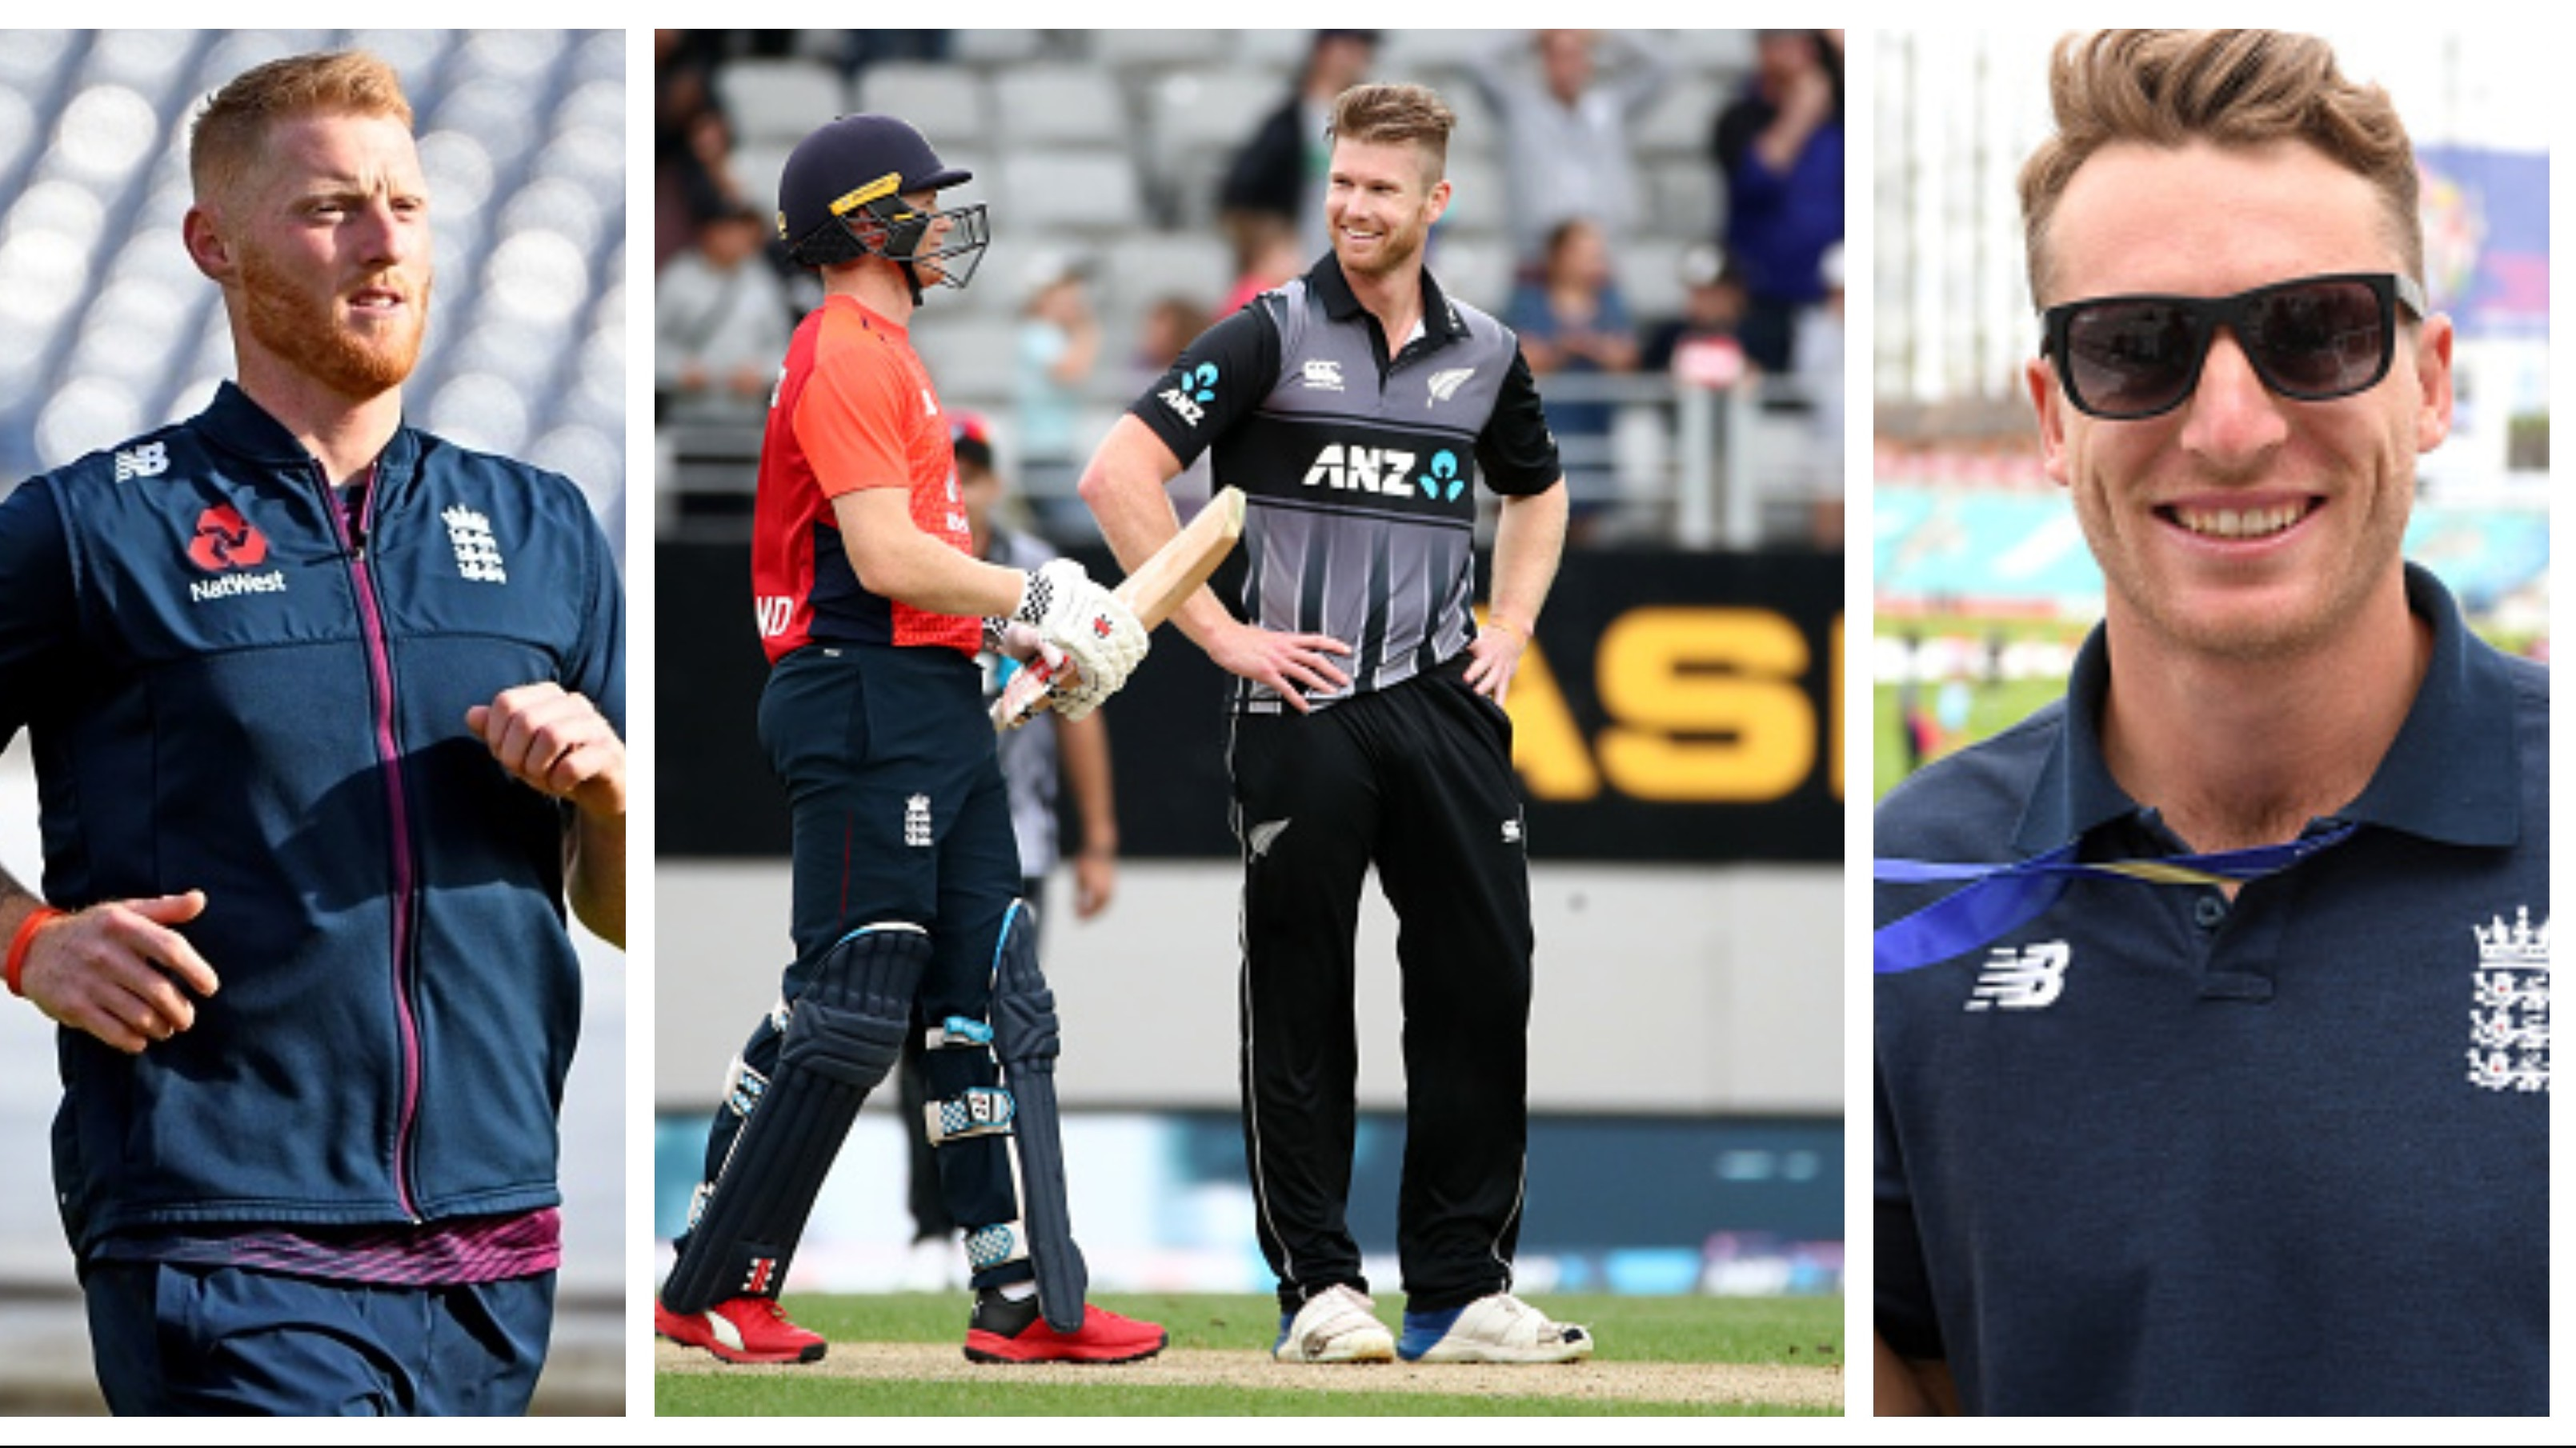 NZ v ENG 2019: Cricket fraternity reacts to World Cup final déjà vu in the T20I series showdown